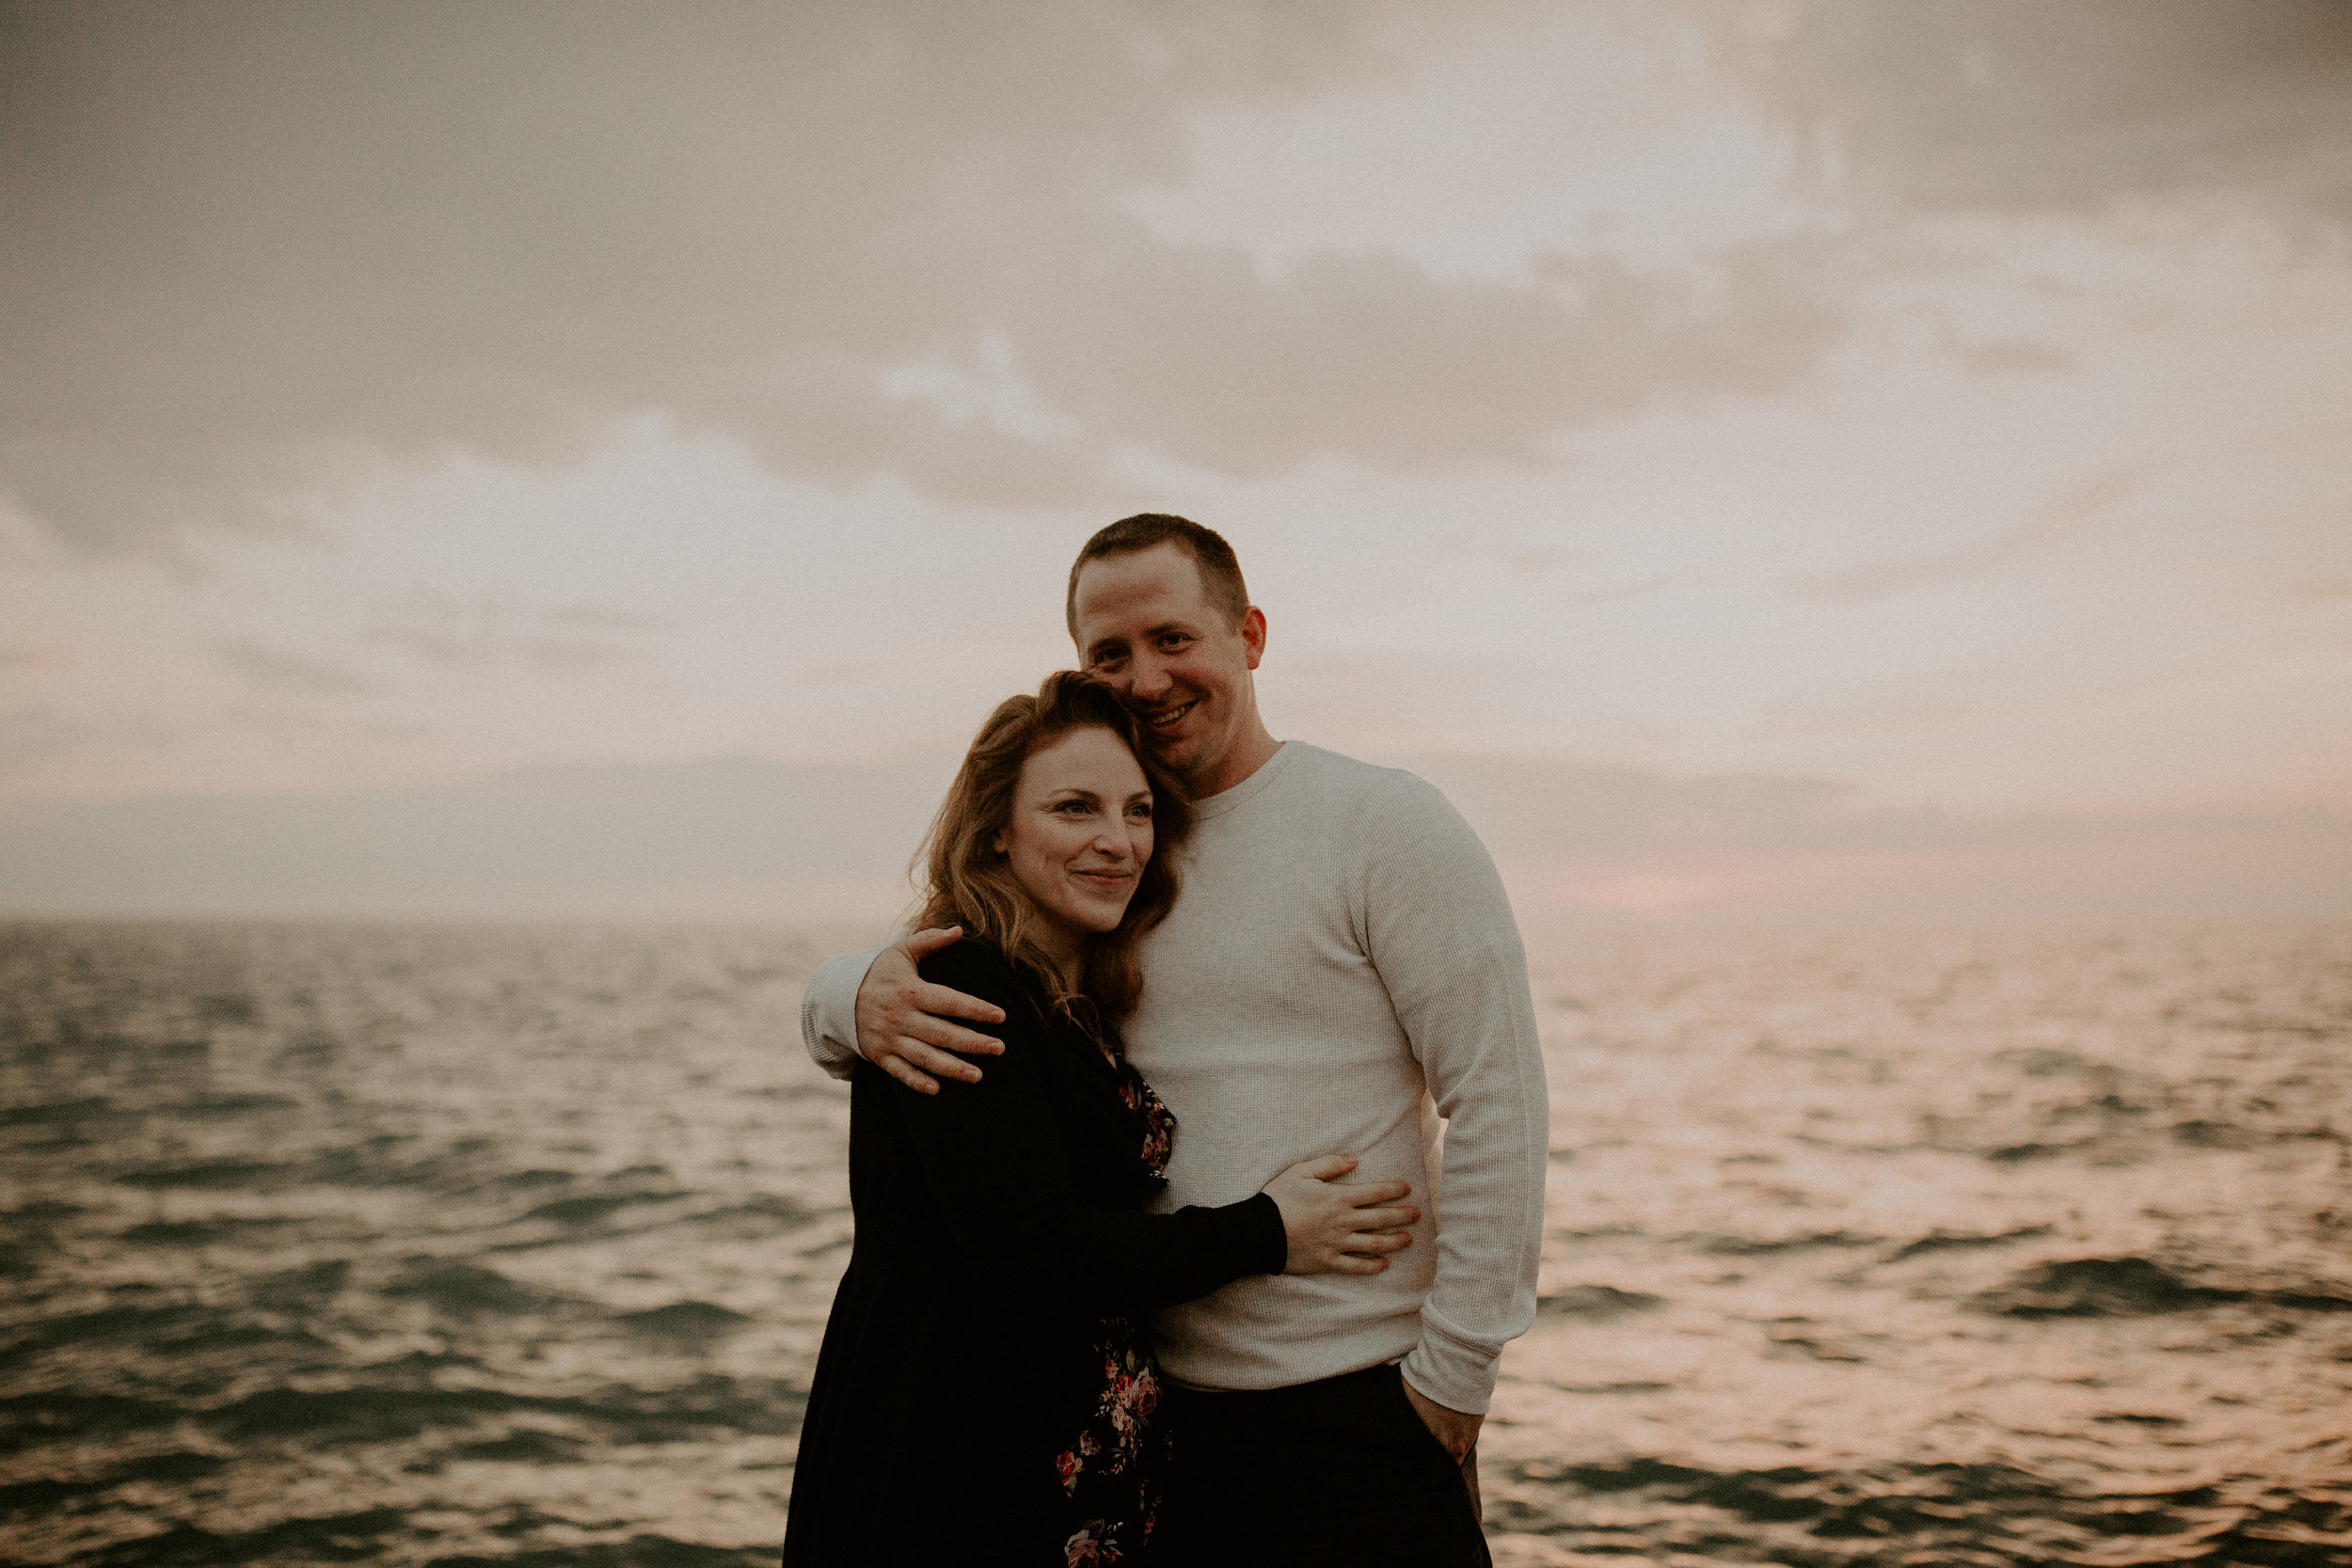 Montrose_Beach_Chicago_Engagement_Session-EDIT-26.JPG